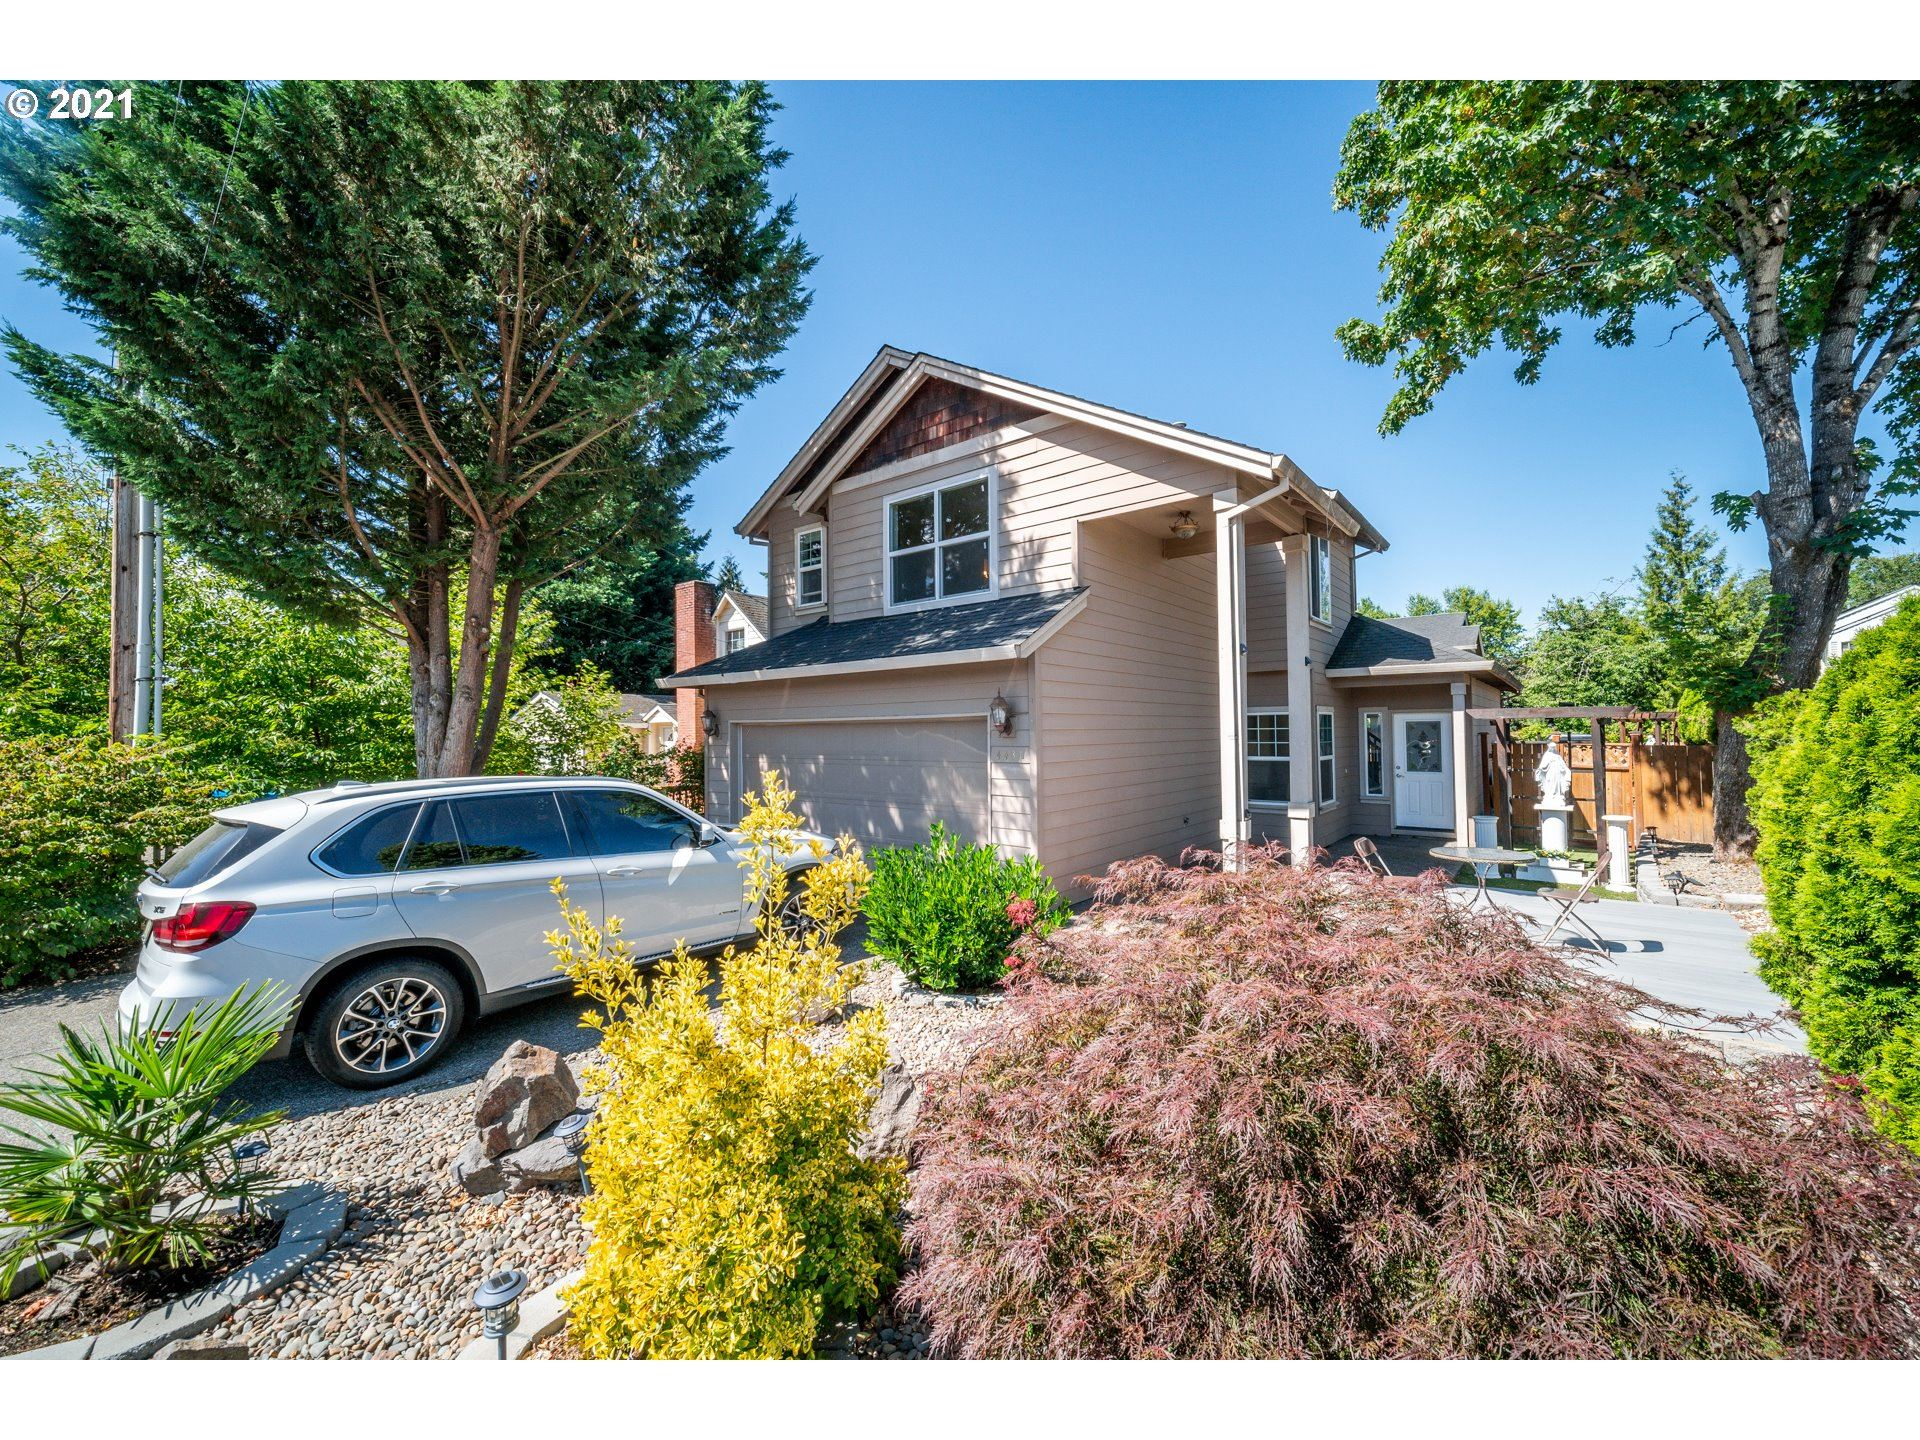 4431 SW 200TH AVE, Aloha, OR 97078 - MLS#: 21202308